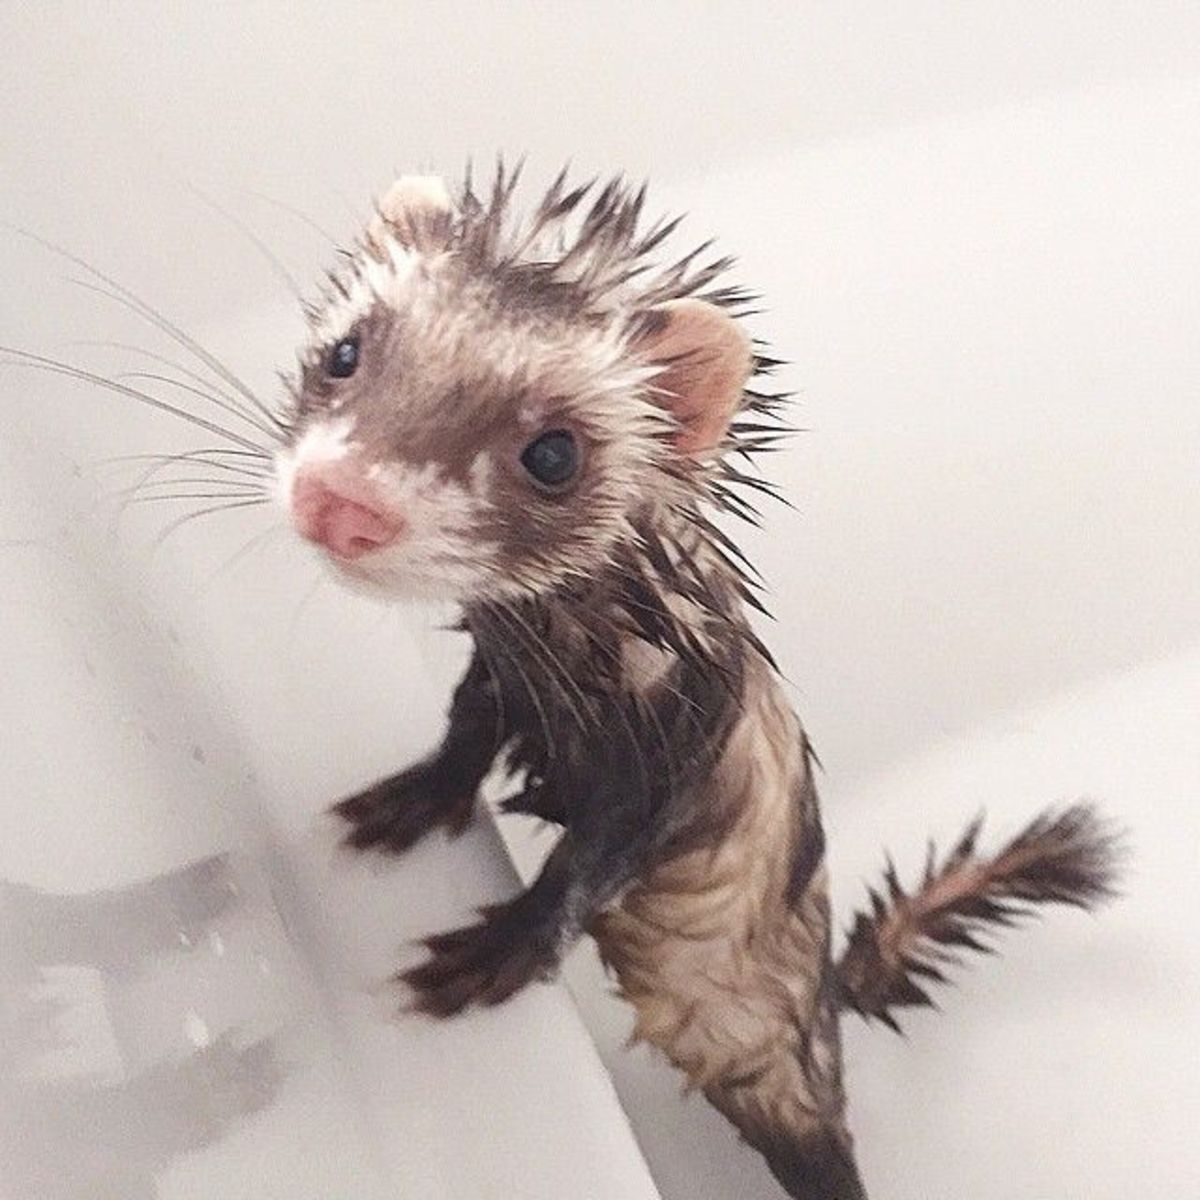 How to Bathe and Groom Your Ferret